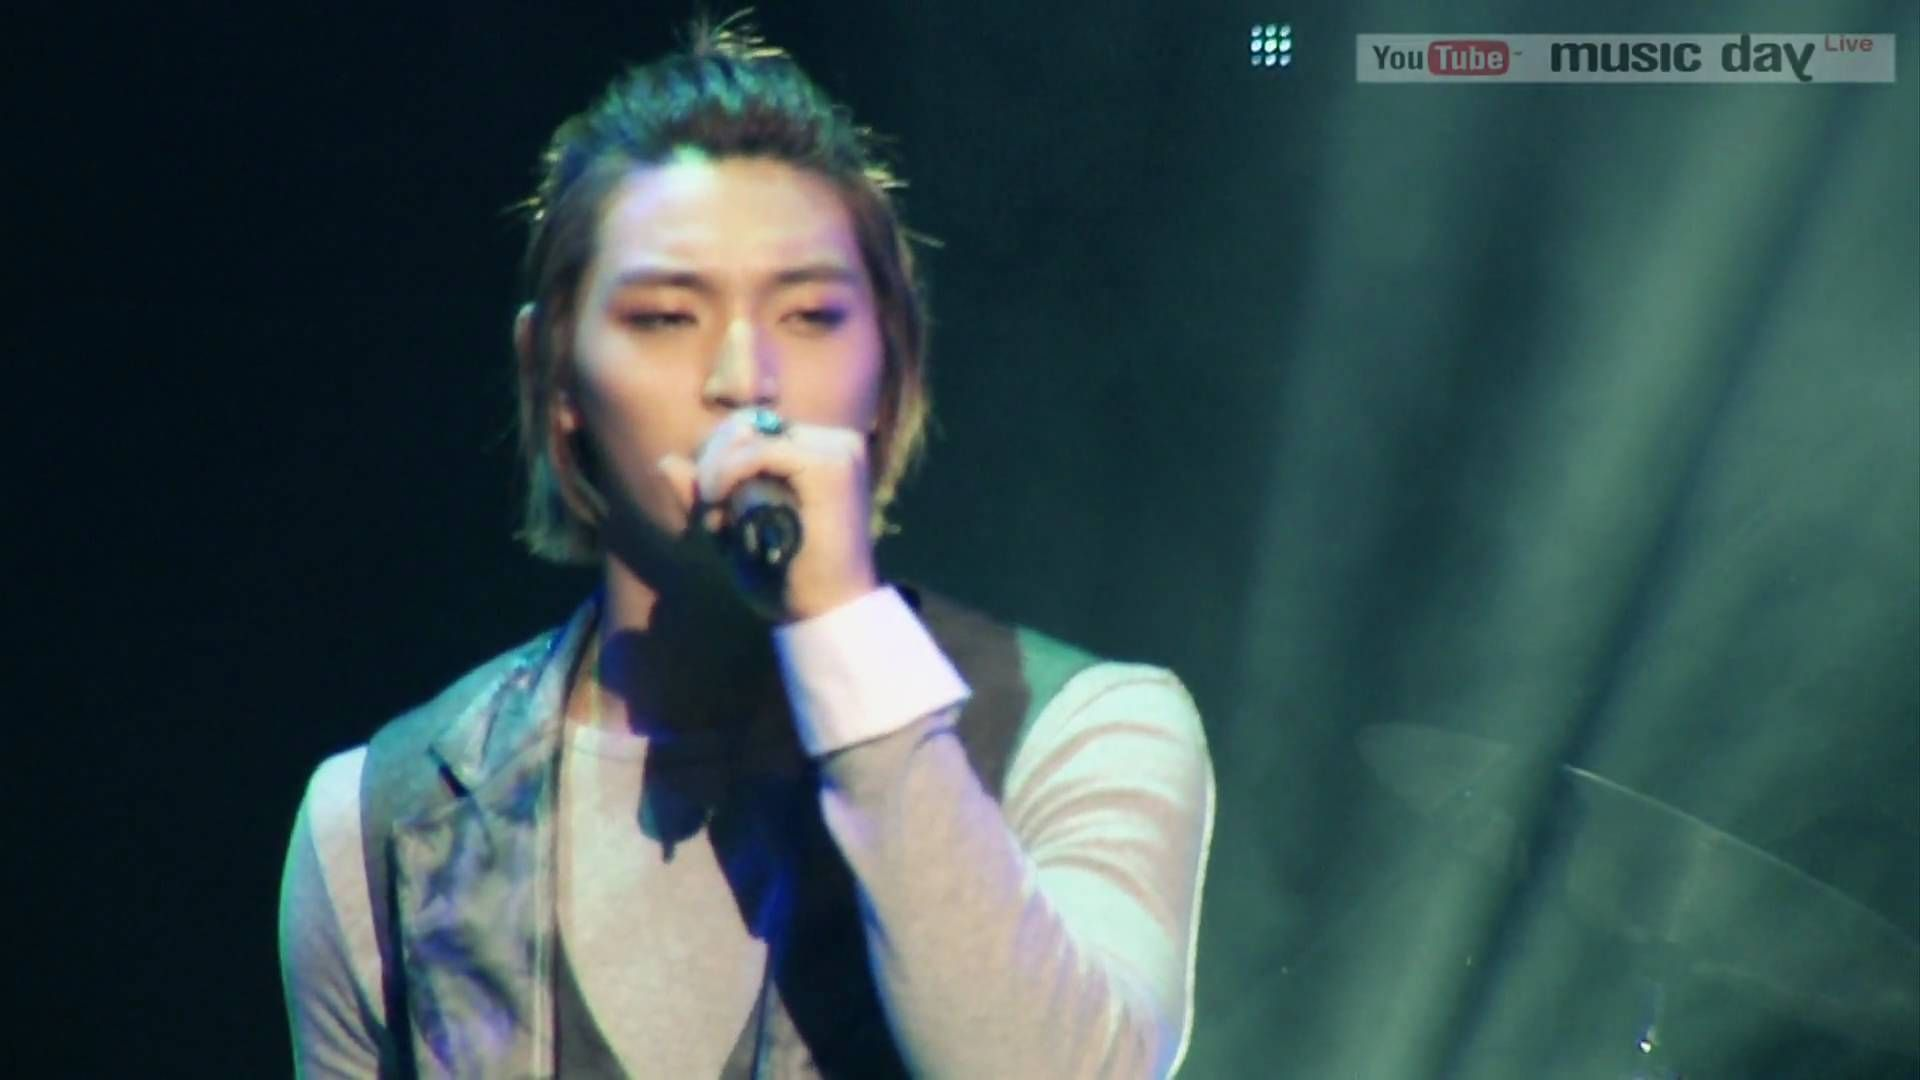 YoutubeMusicDay_2AM_죽어도 못 보내_Can't Let You Go Even if I Die